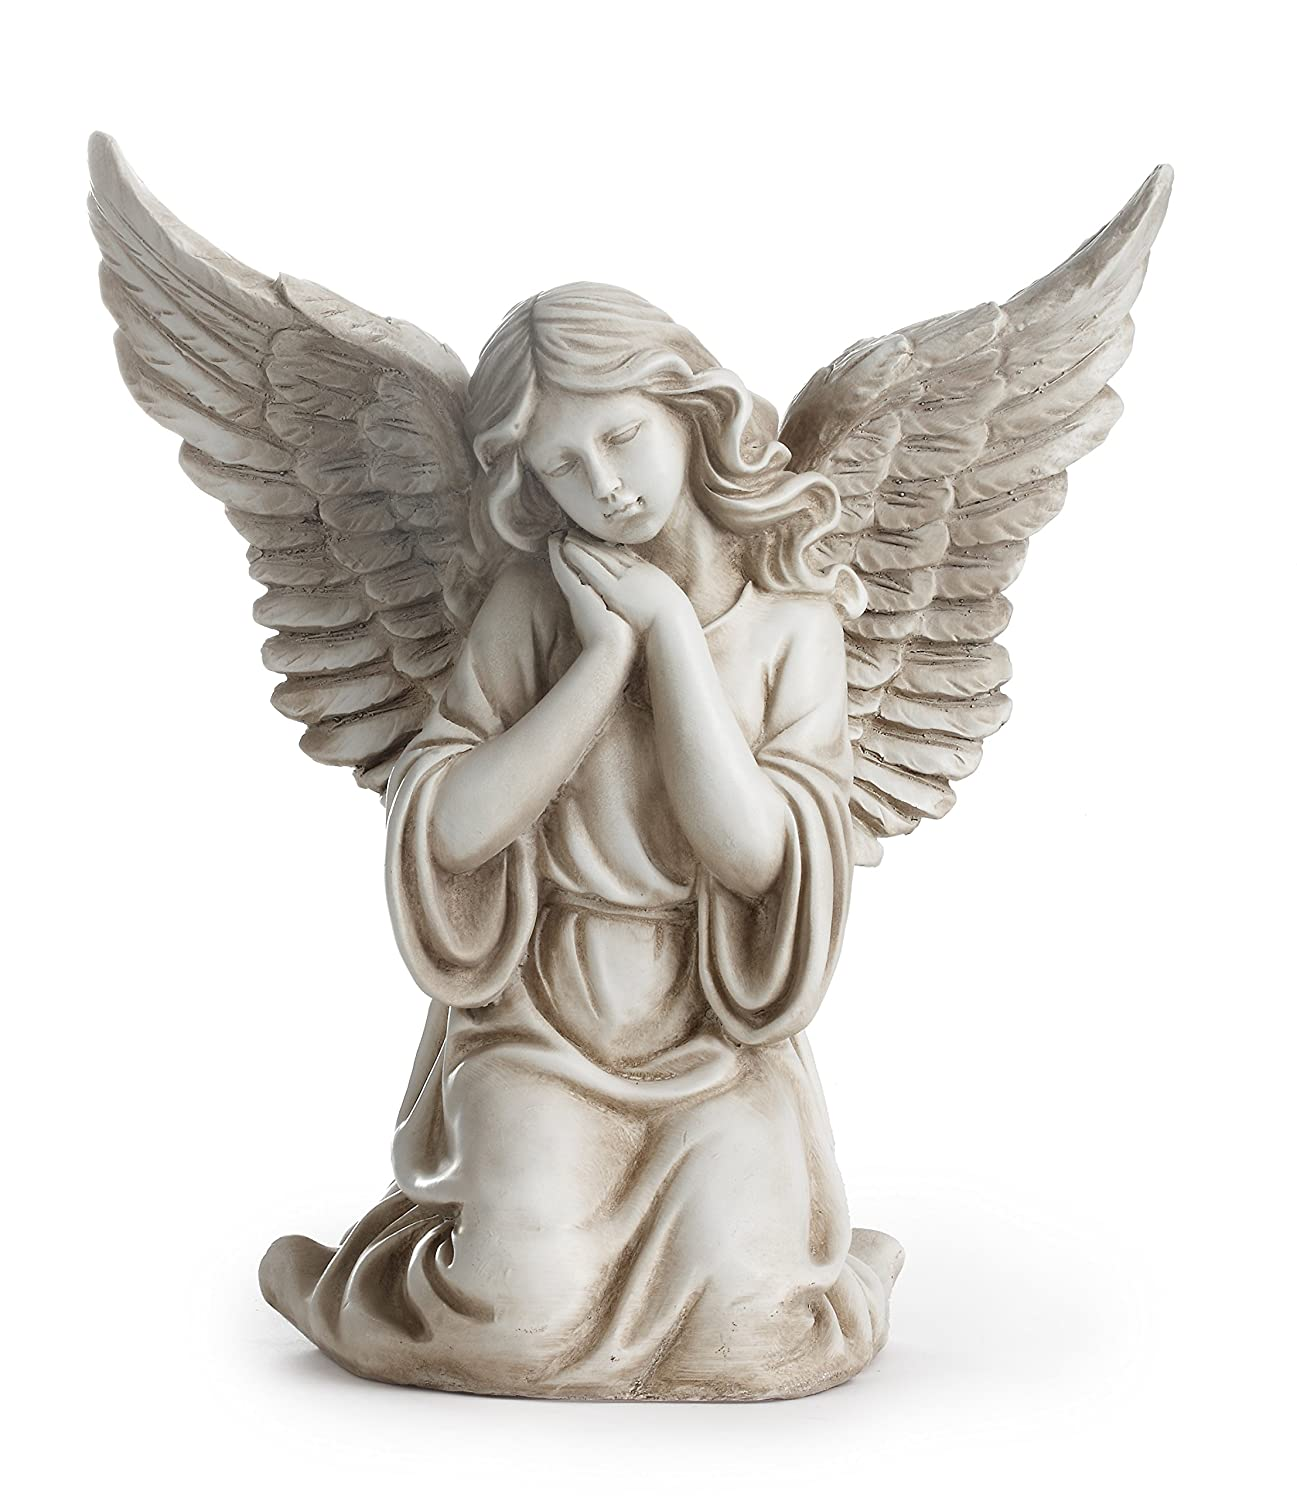 Napco 11300 Kneeling Angel with Outstretched Wings Garden Statue, 12.5""